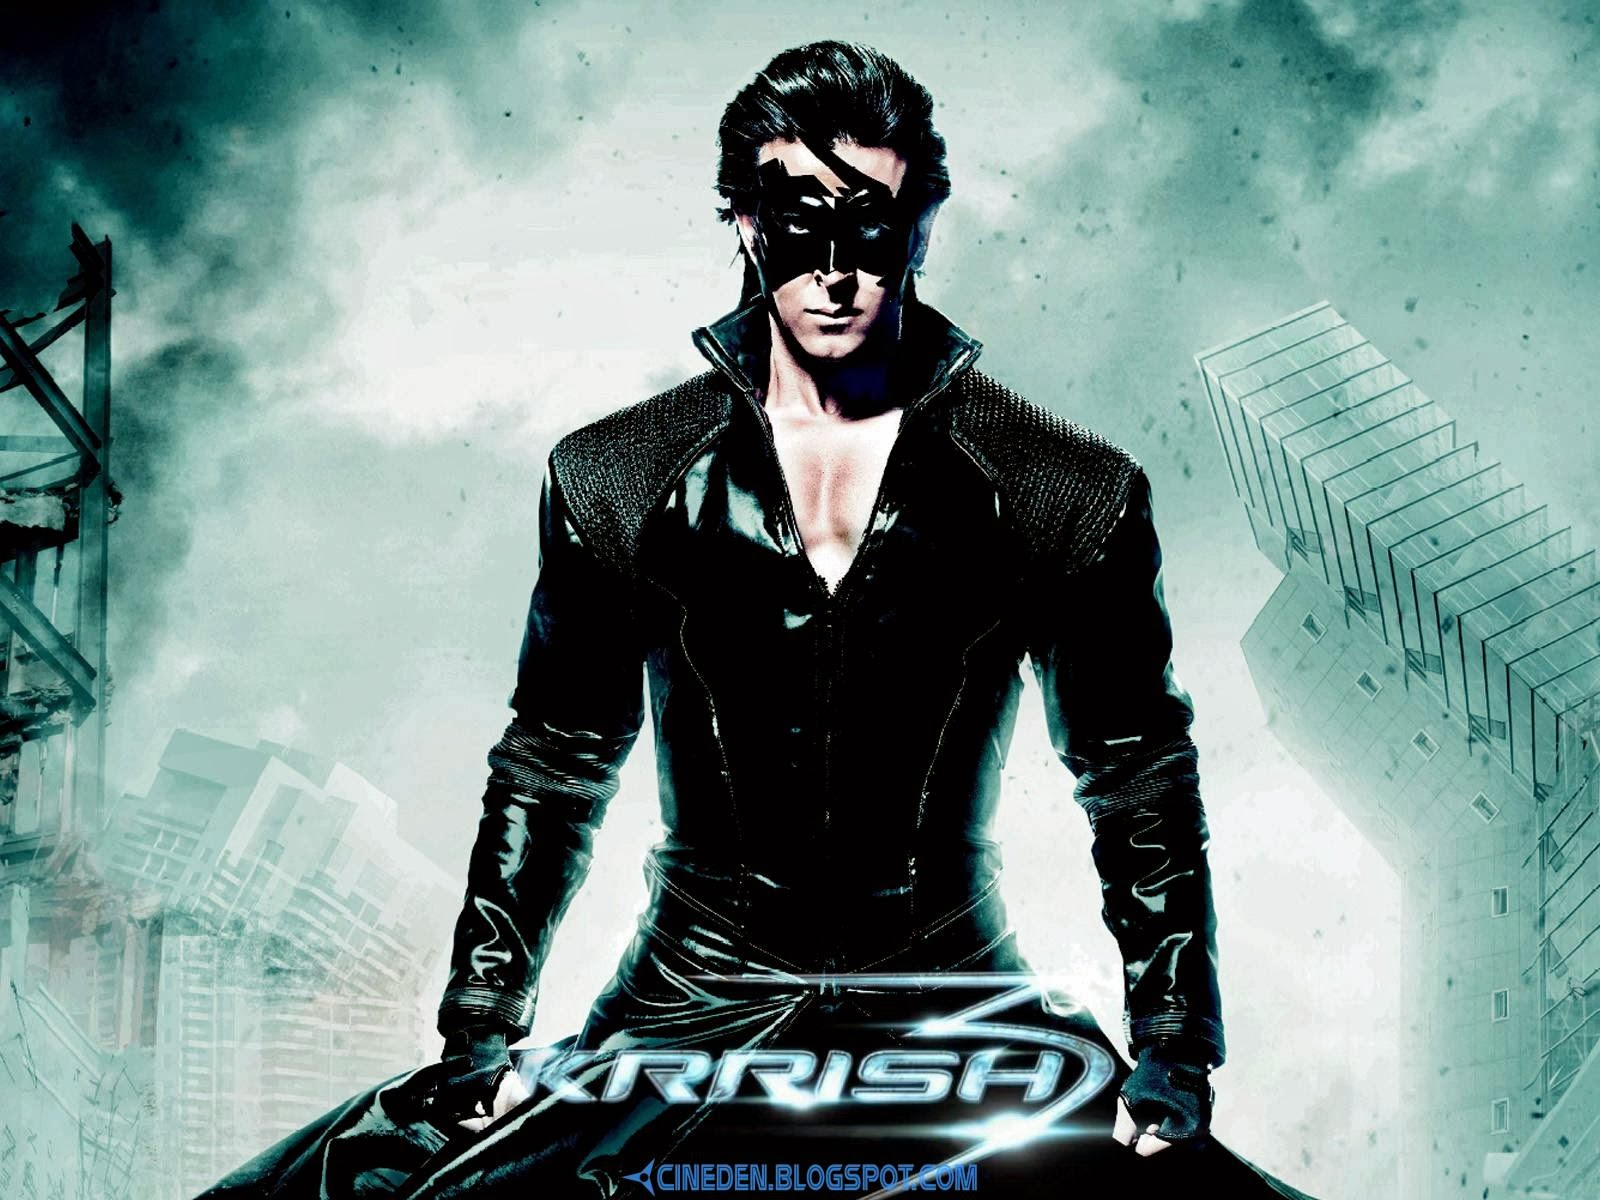 Krrish 3 breaks all records! - CineDen